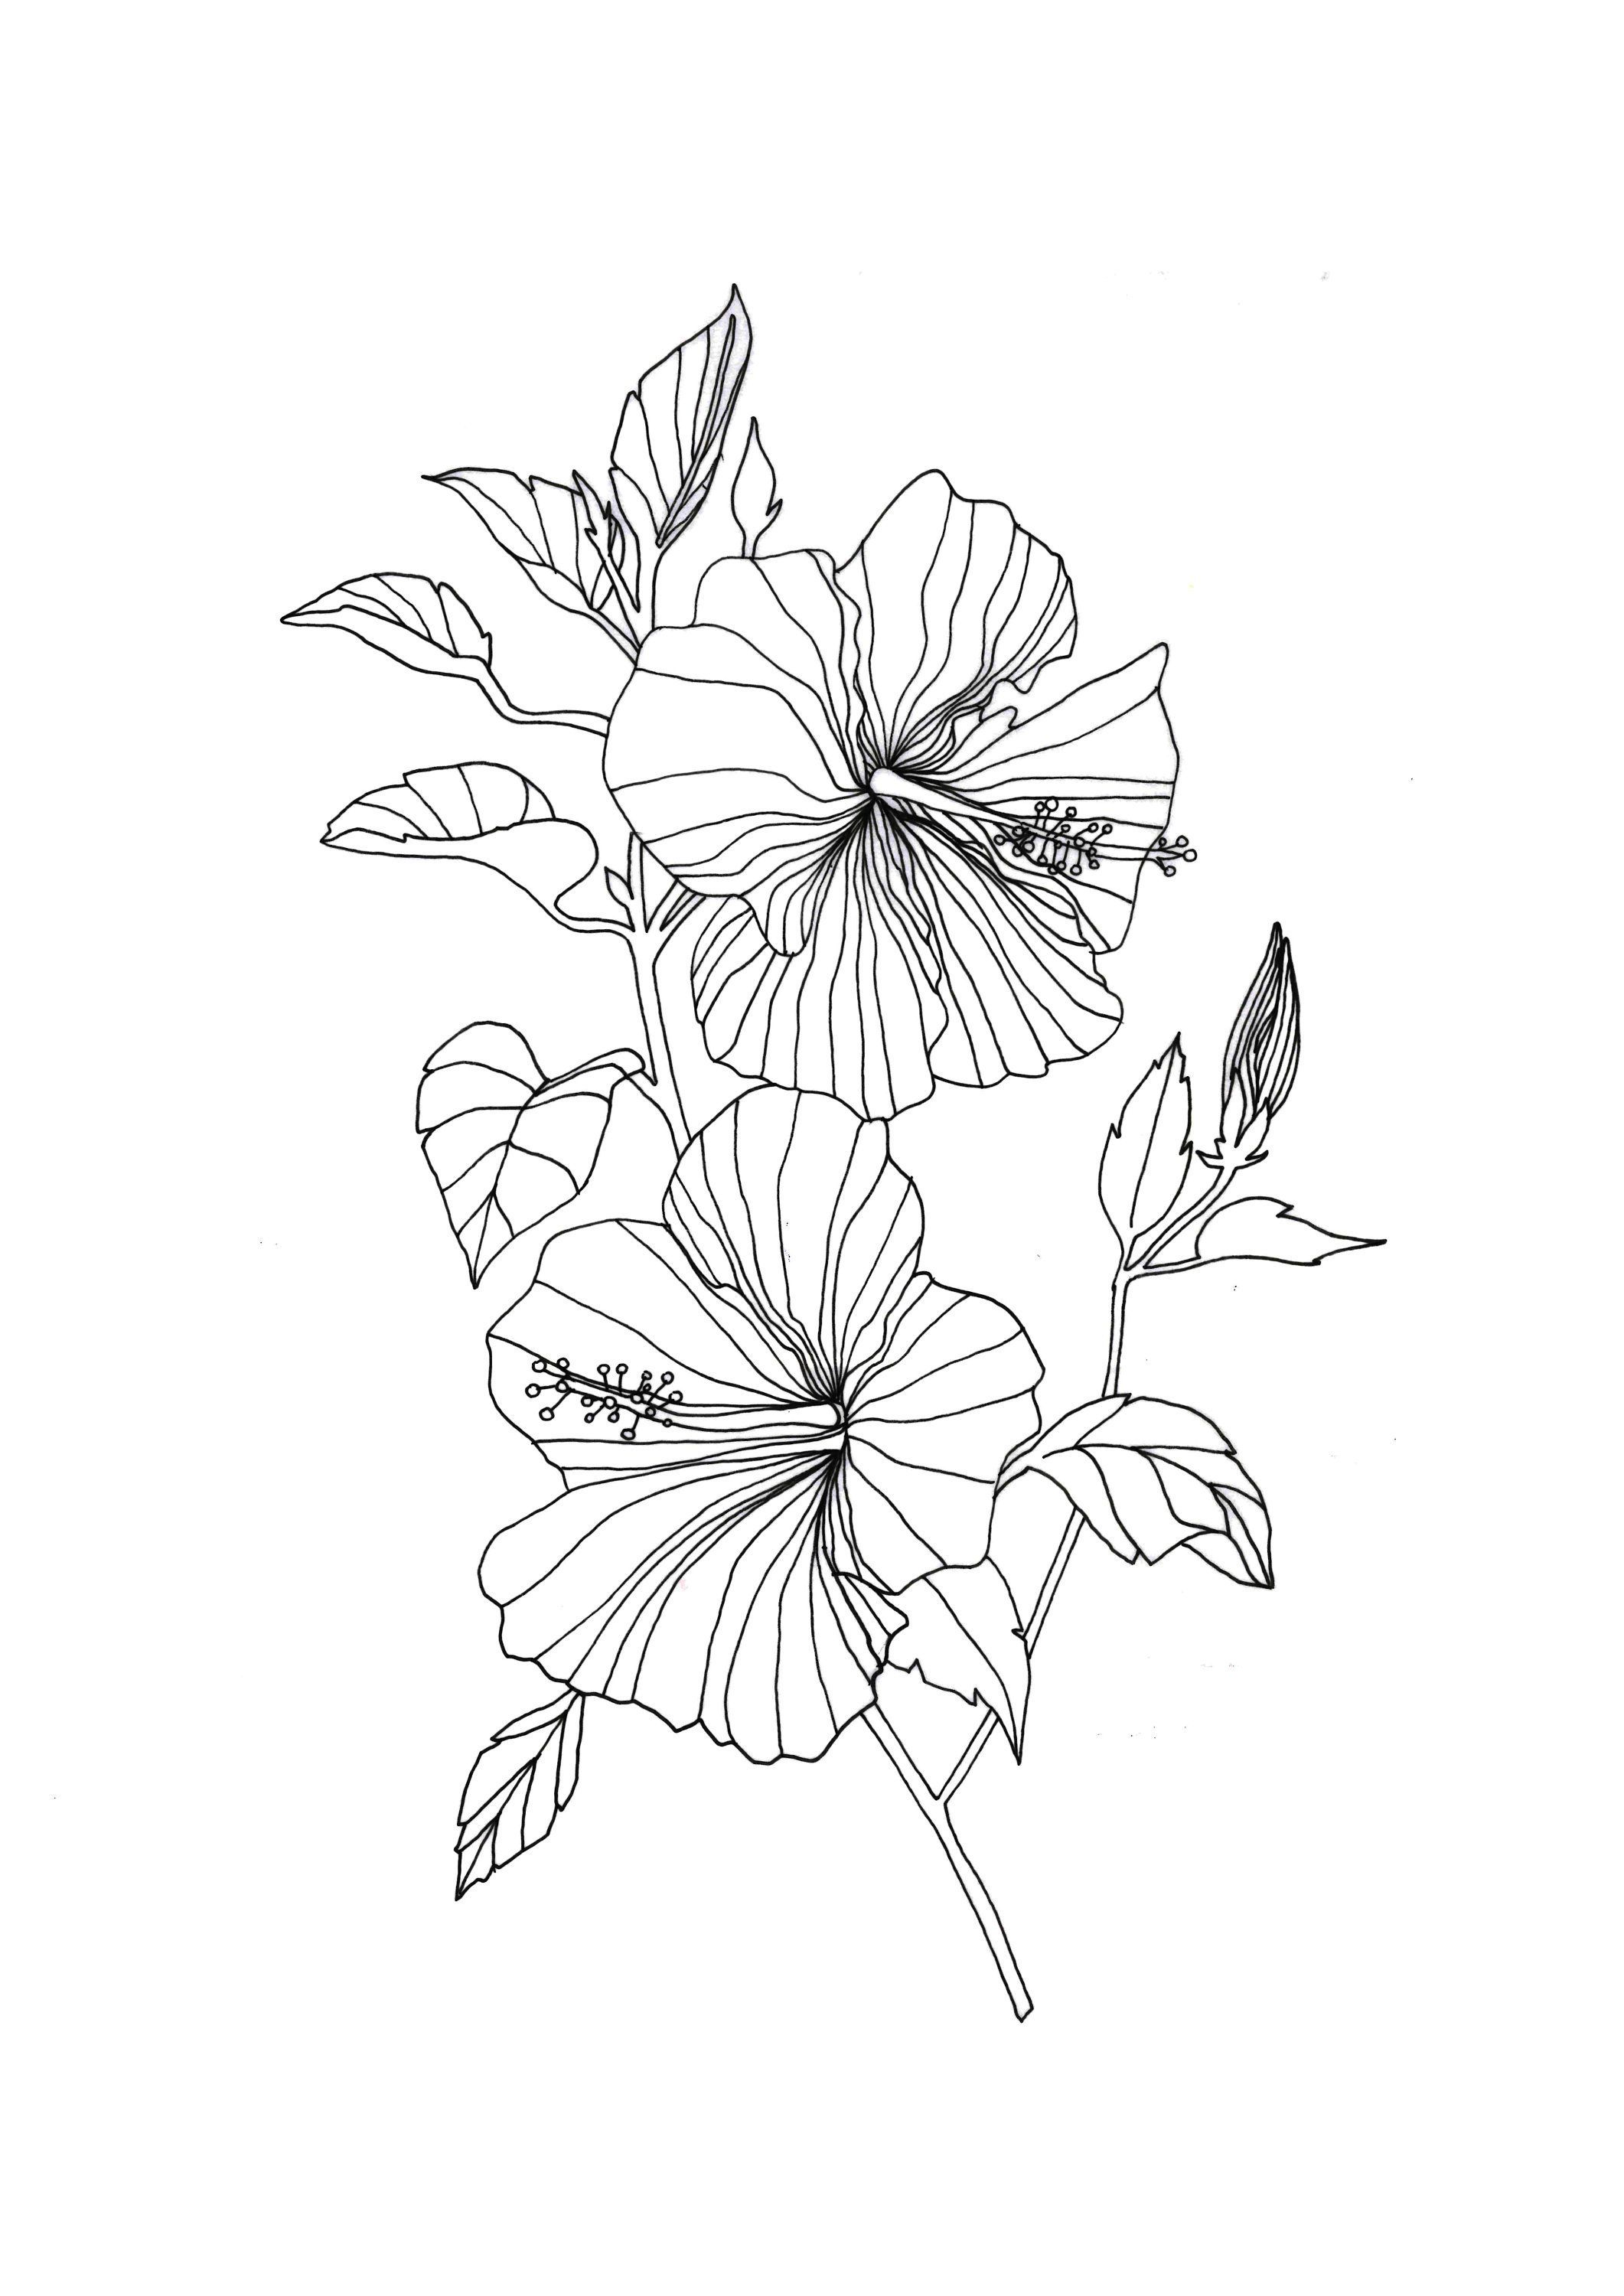 Drawing Flowers Mandala In Ink Flower Line Drawings Hibiscus